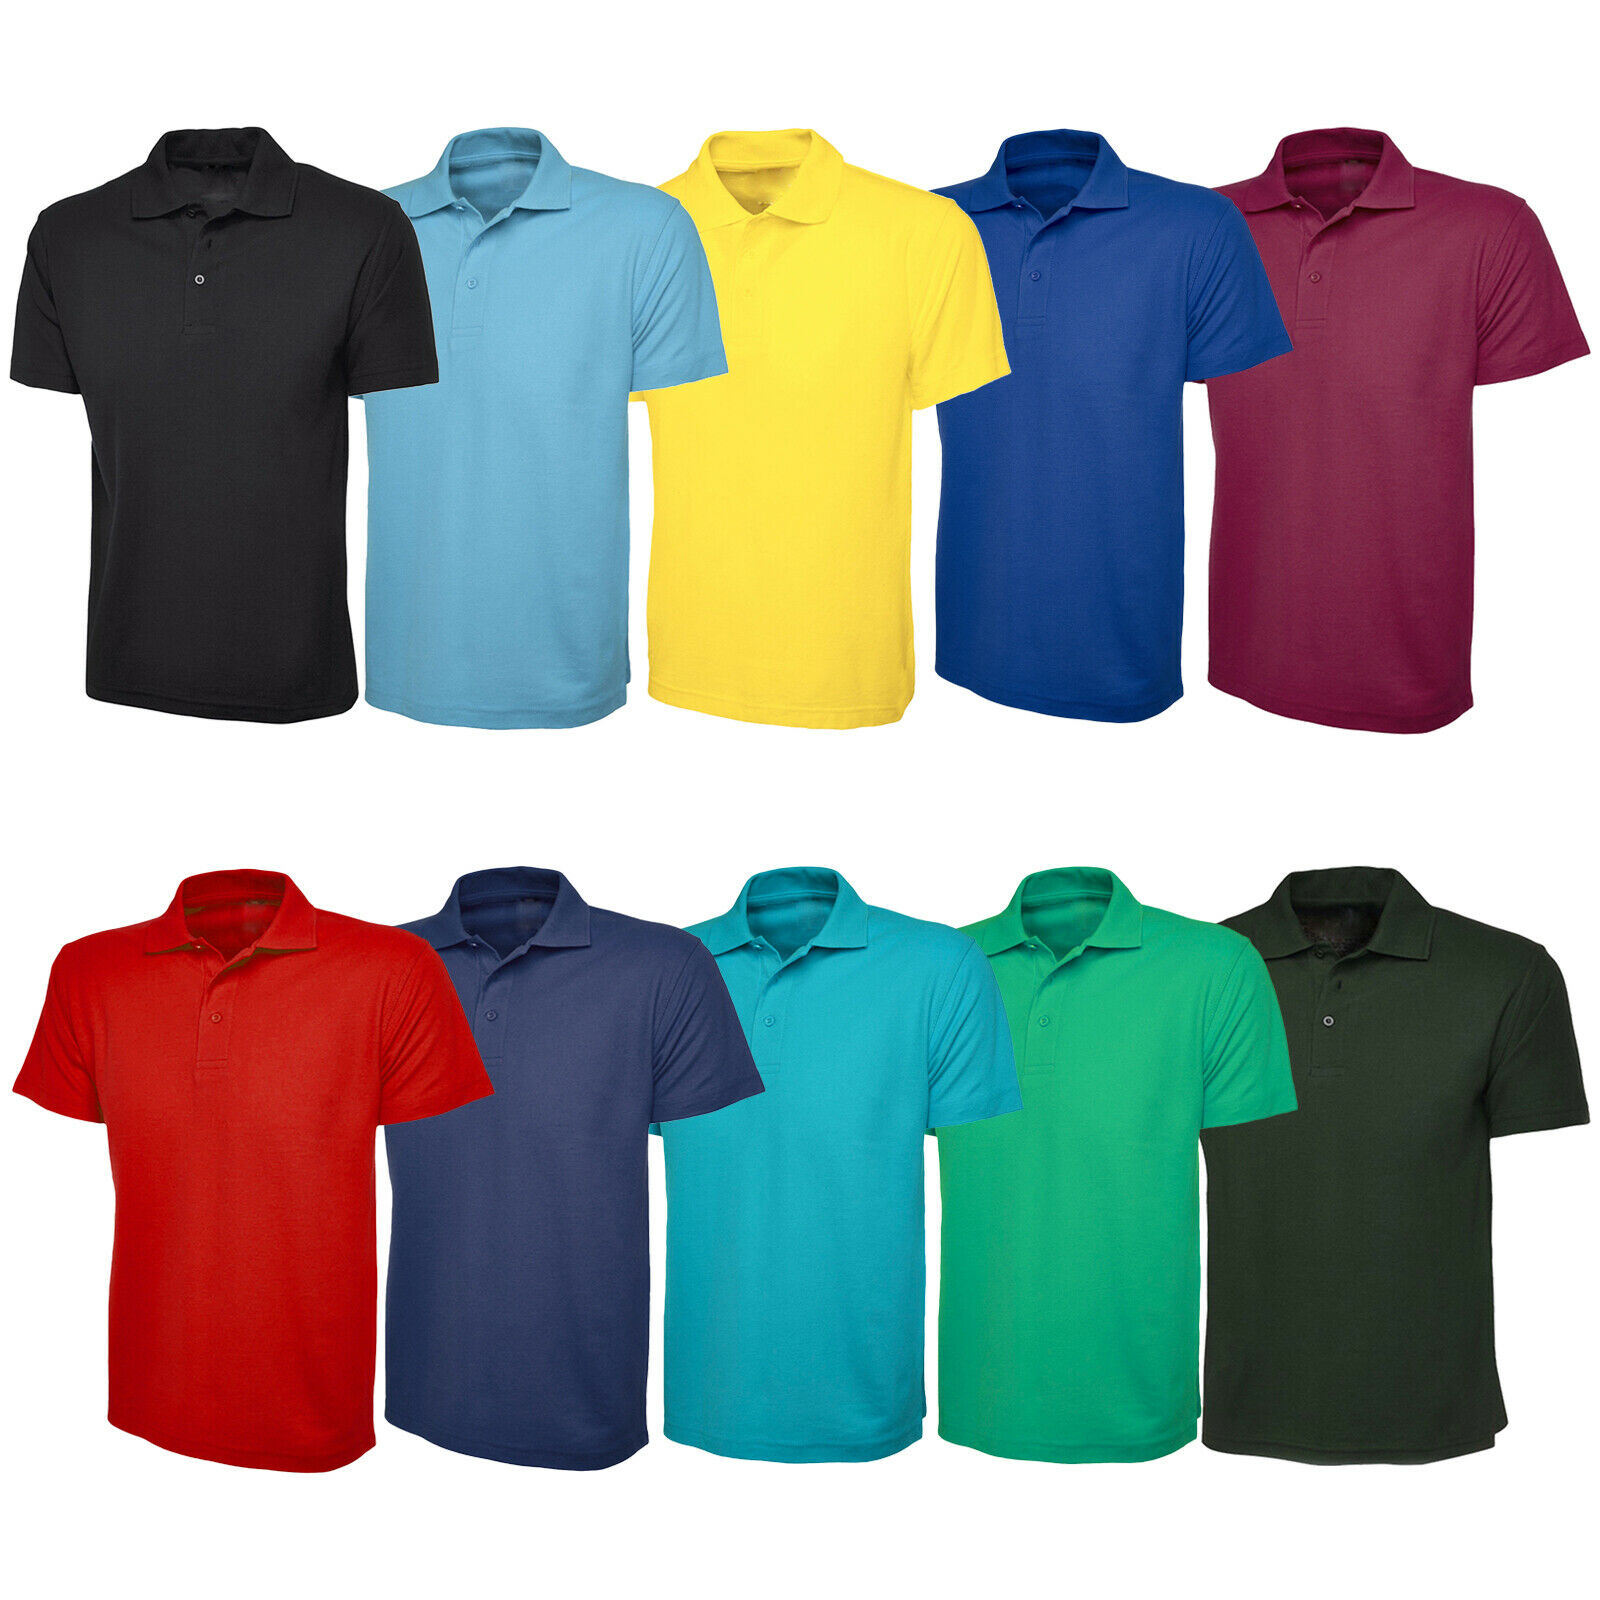 7a305b991 Boys & Girls Plain Cotton Polo Shirts Children School T-Shirts ...